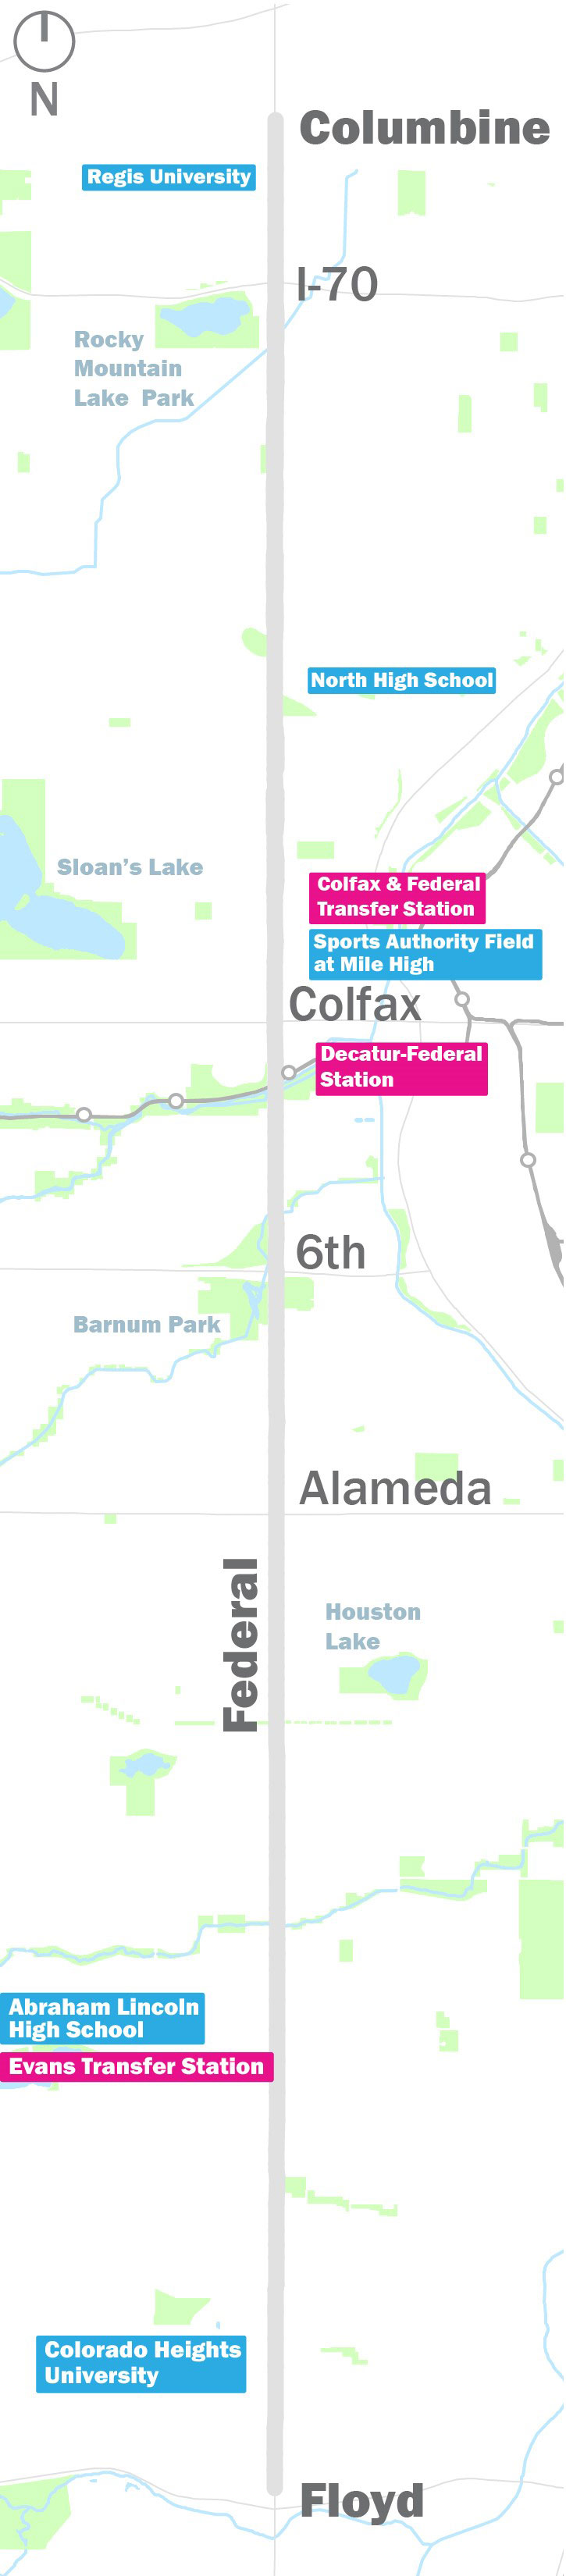 Federal Blvd map from Floyd in the south to Columbine in the north, highlighting key destinations on the corridor near Colfax